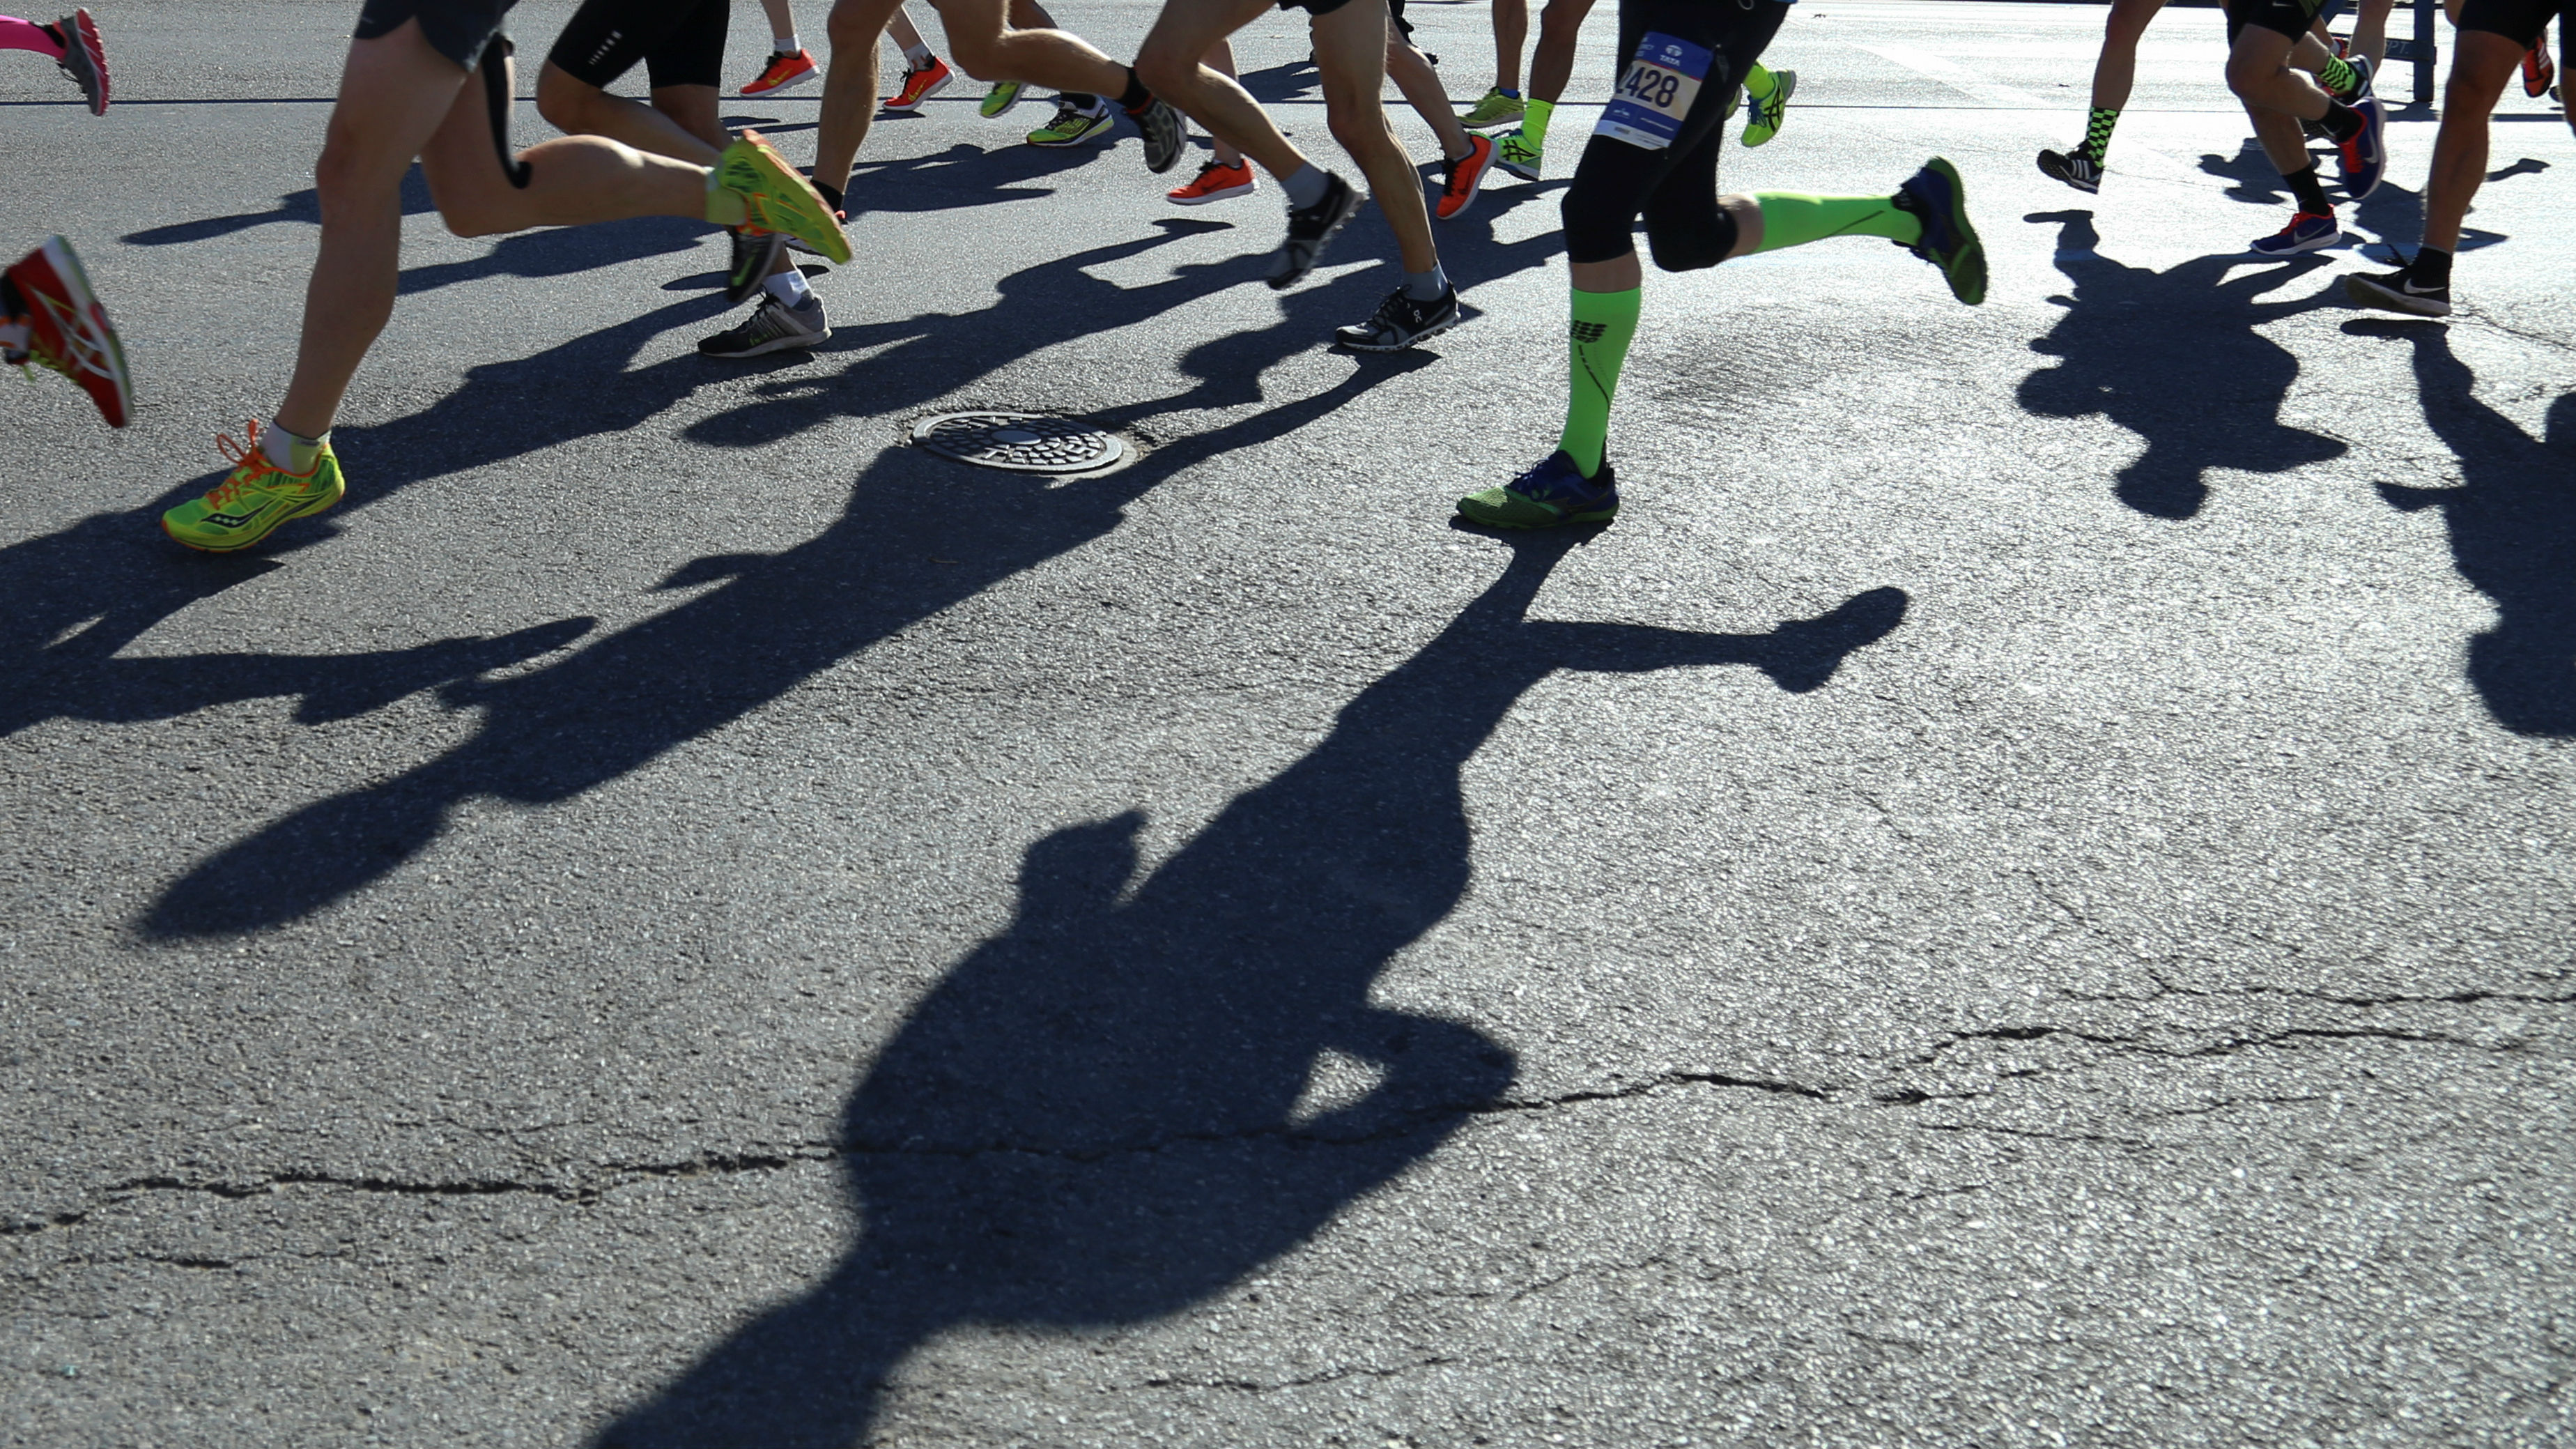 The shadows of runners hit the ground as they take part in the 2016 New York City Marathon in the Brooklyn borough of New York, U.S., November 6, 2016.